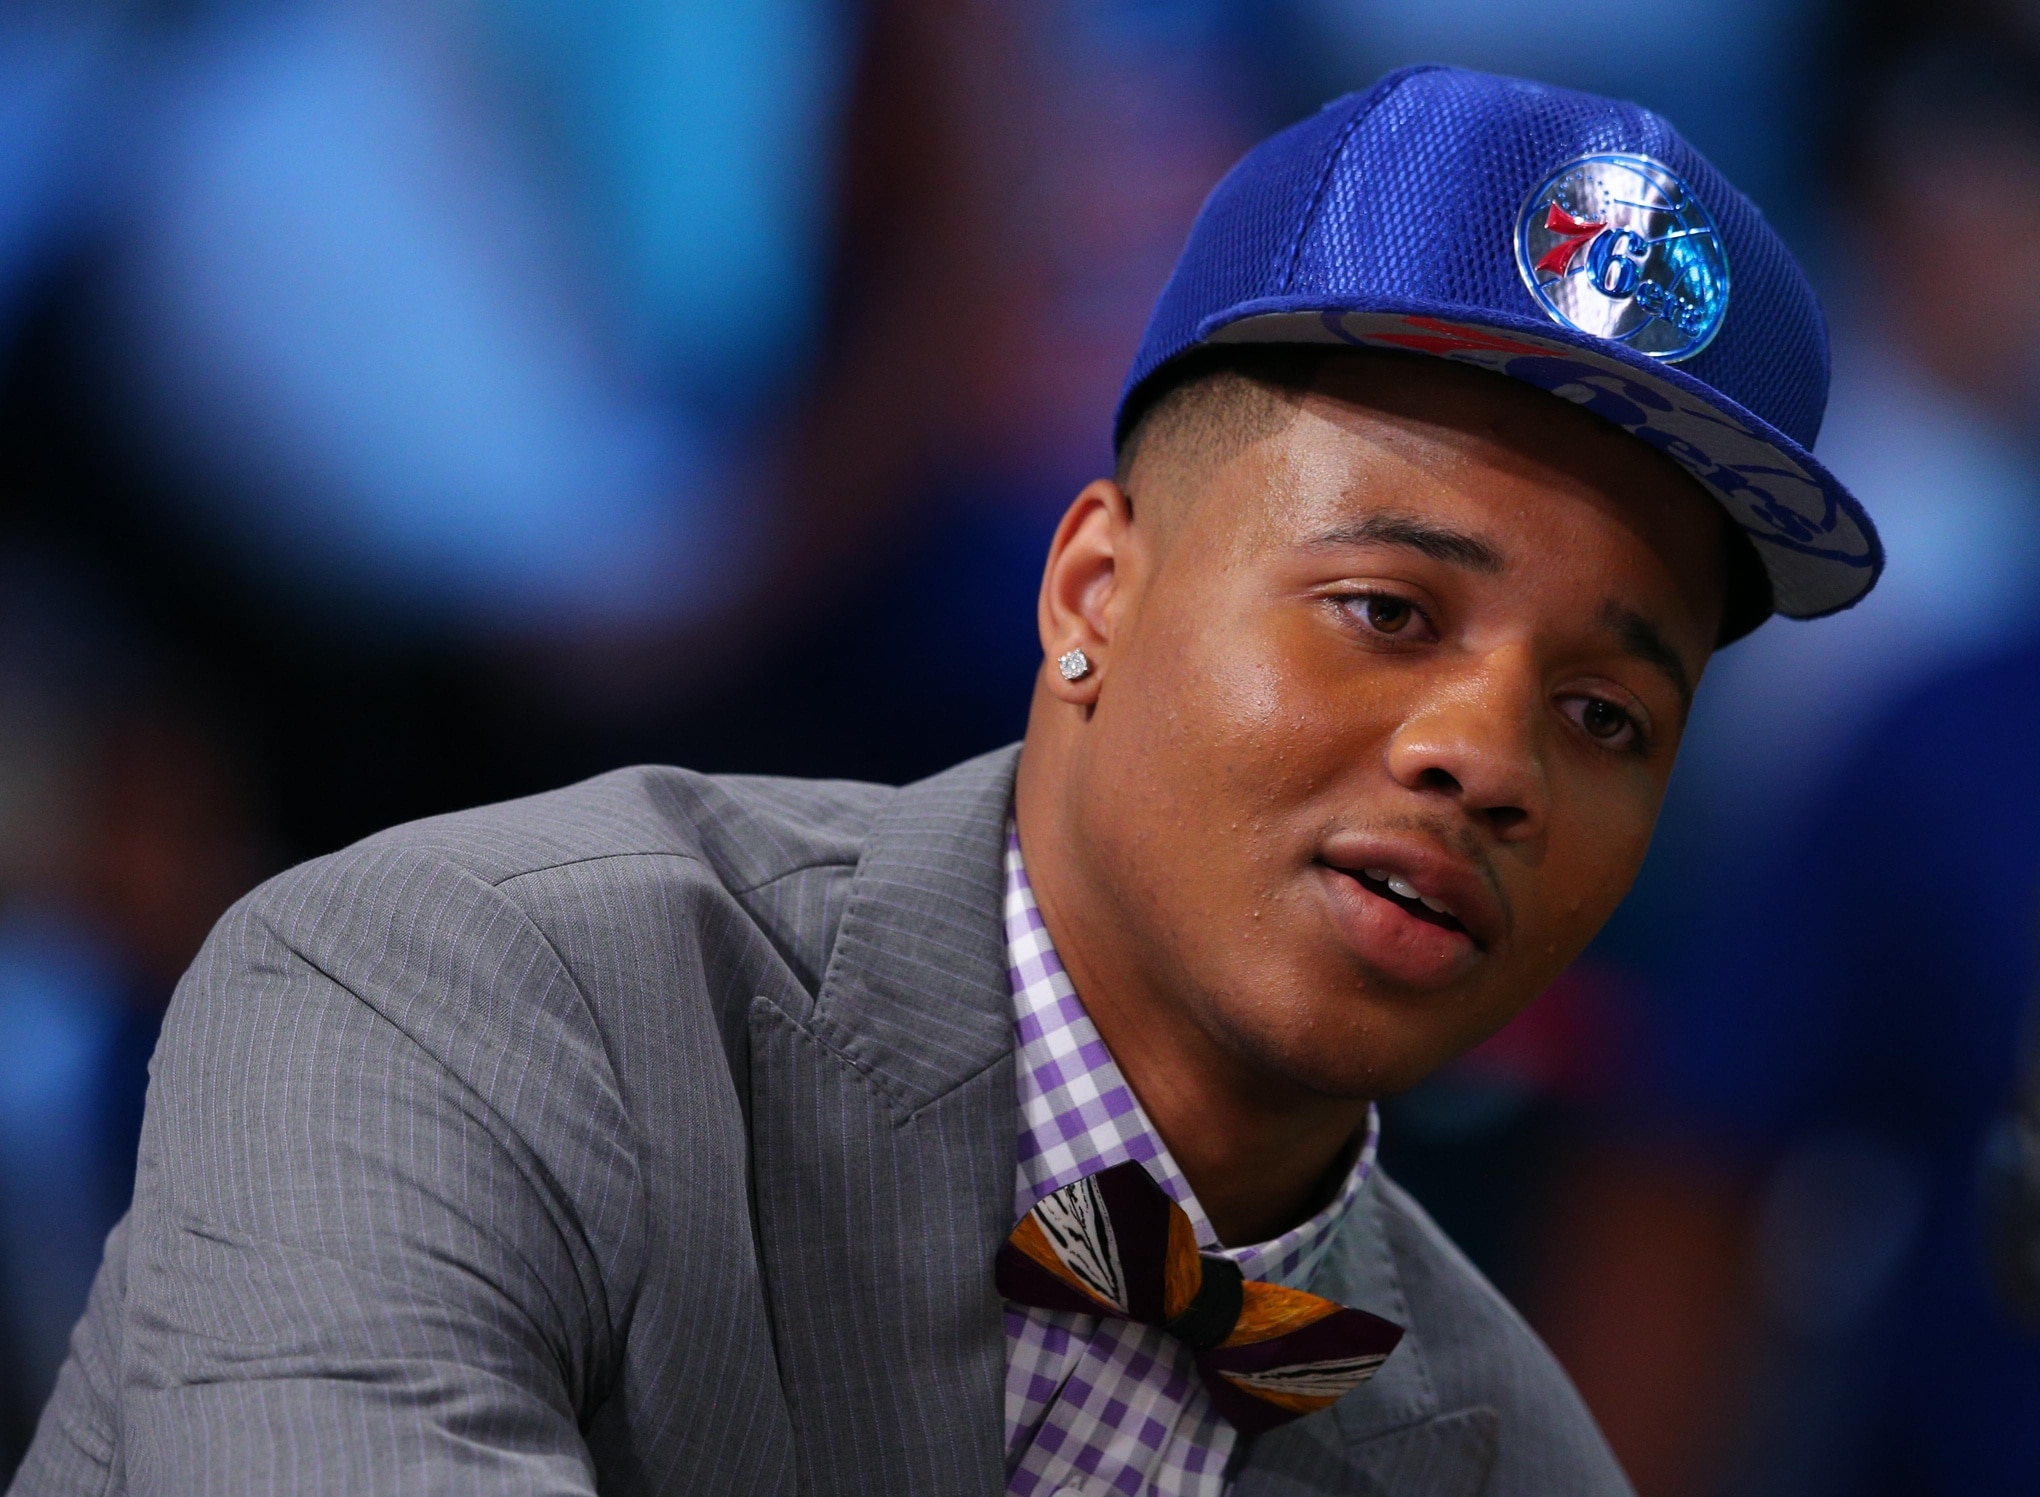 Sixers traded up for Markelle Fultz atop the 2017 NBA Draft.